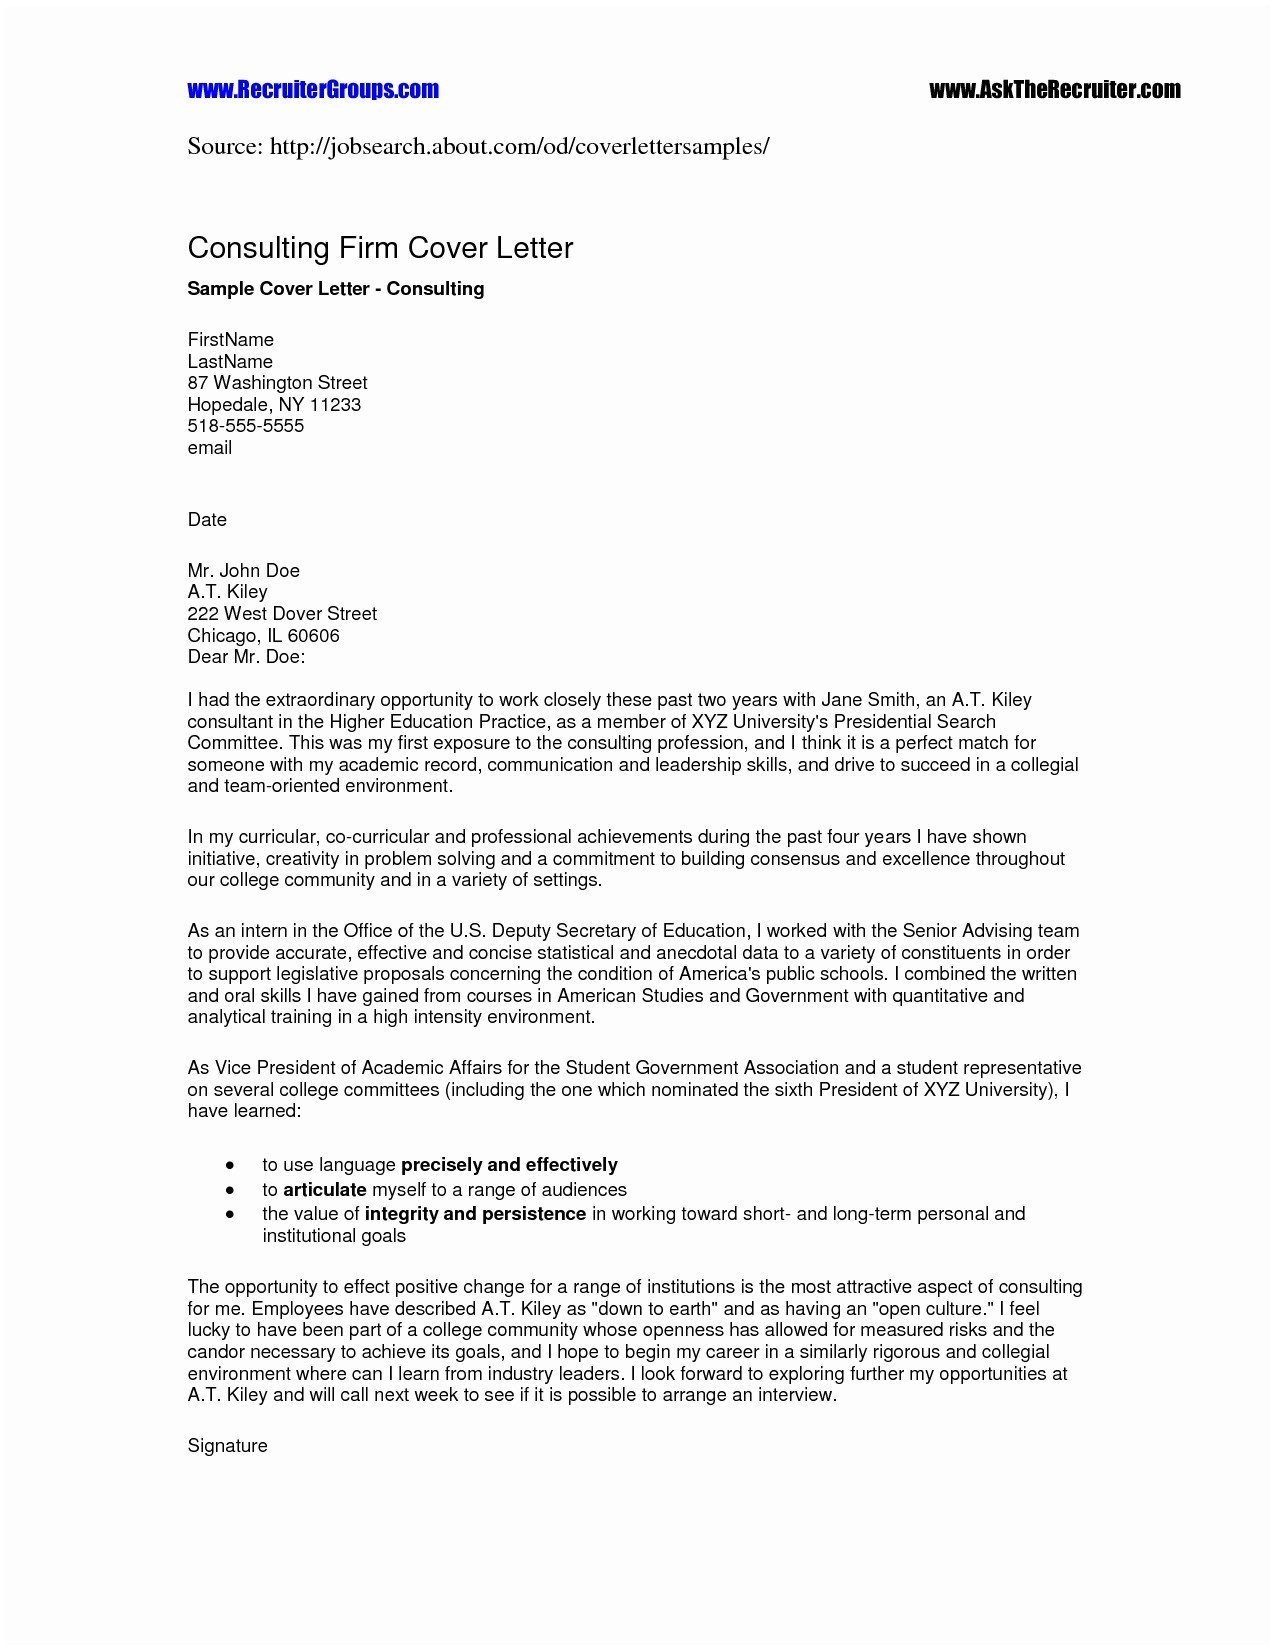 Tenant Guarantor Letter Template - Guarantor Letter for Job Best Letter Interest for Job Email Valid